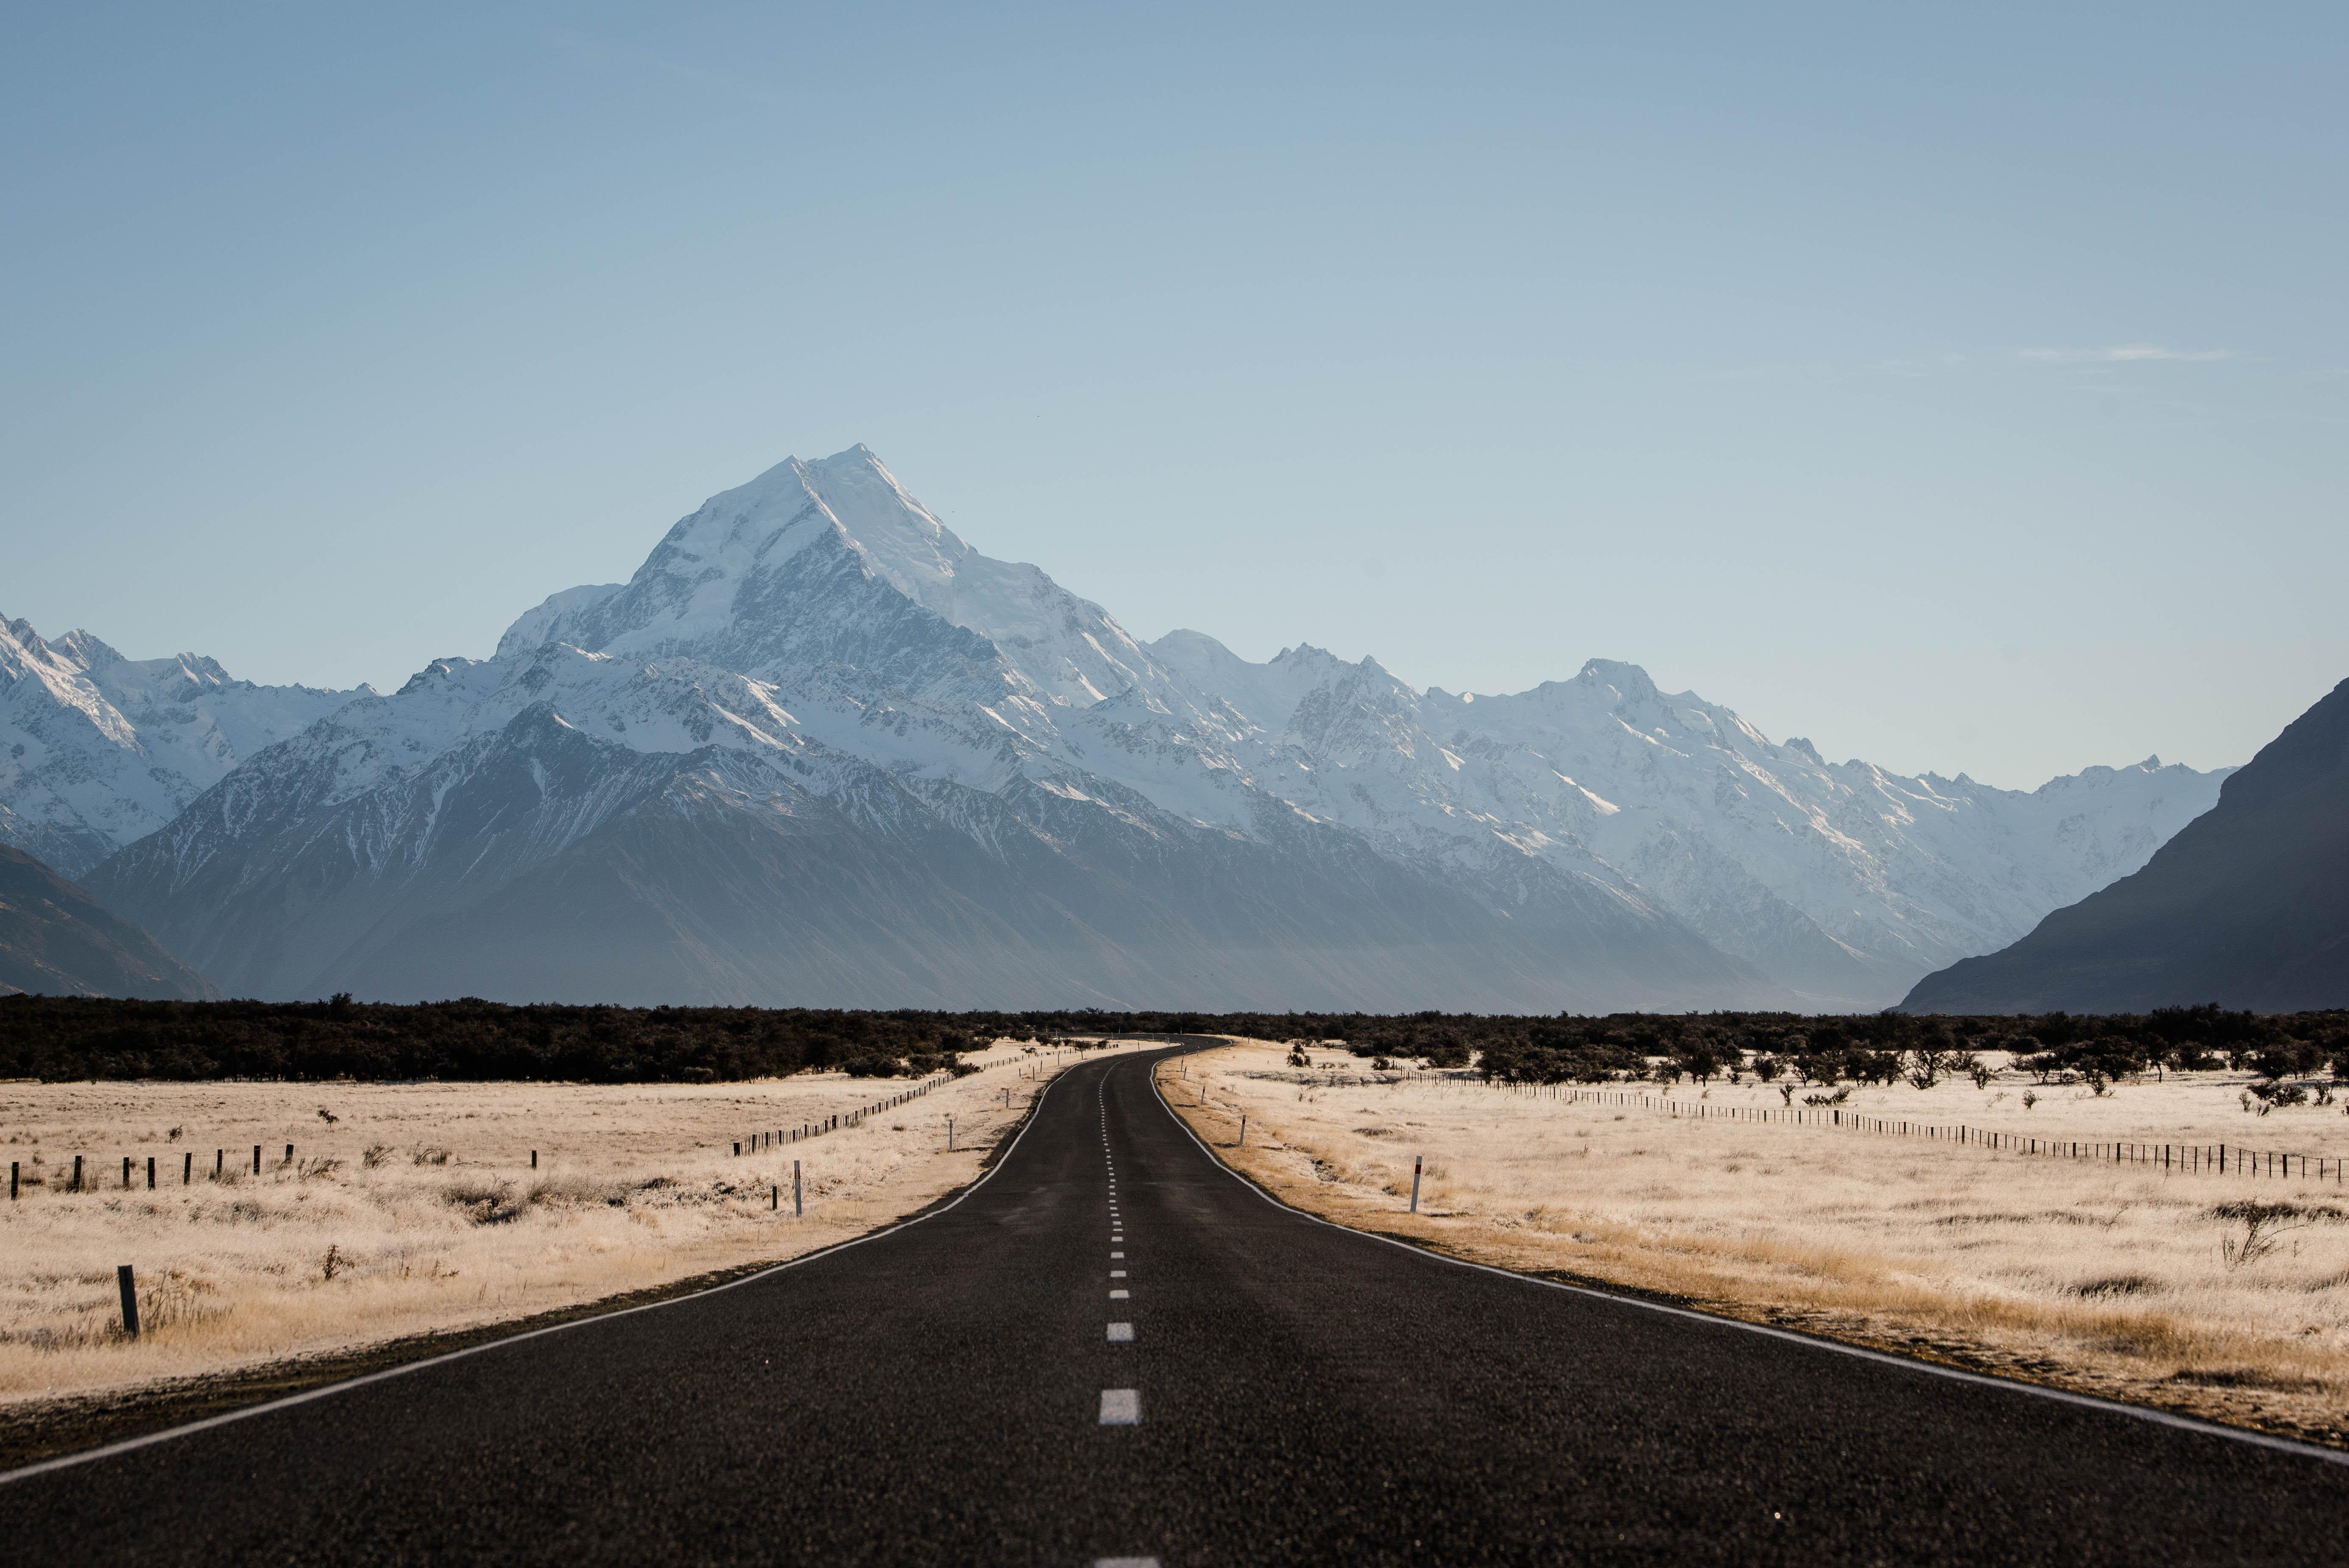 The Breathtaking Journey To Mt Cook New Zealand 4K Wallpaper